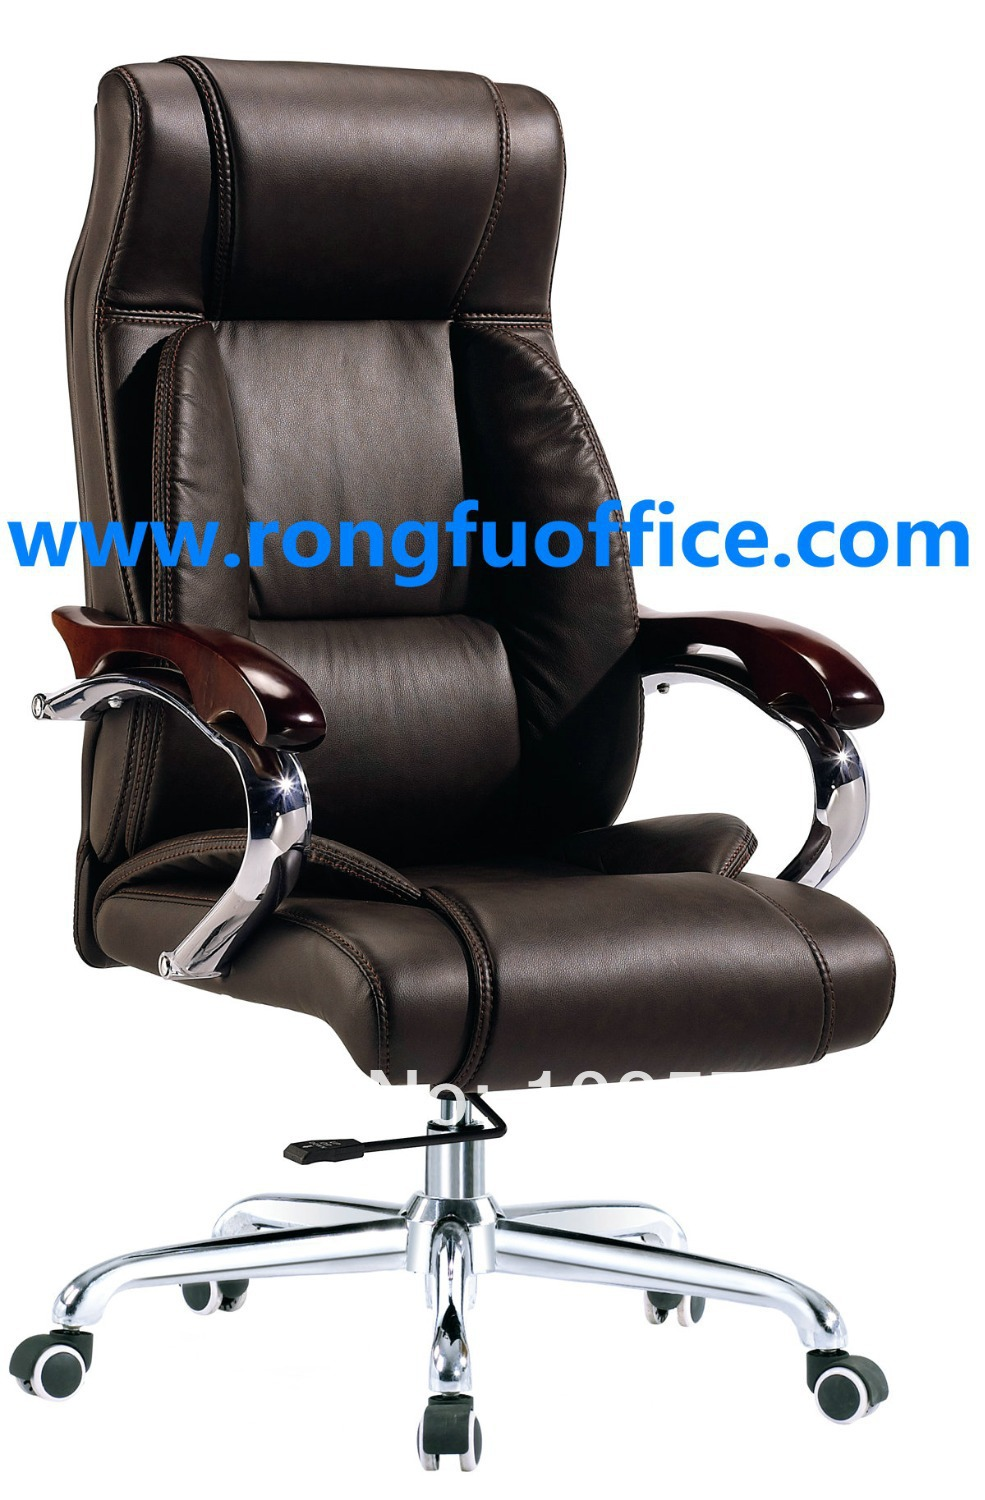 com buy 2014 new design office chairs manager chair boss chair